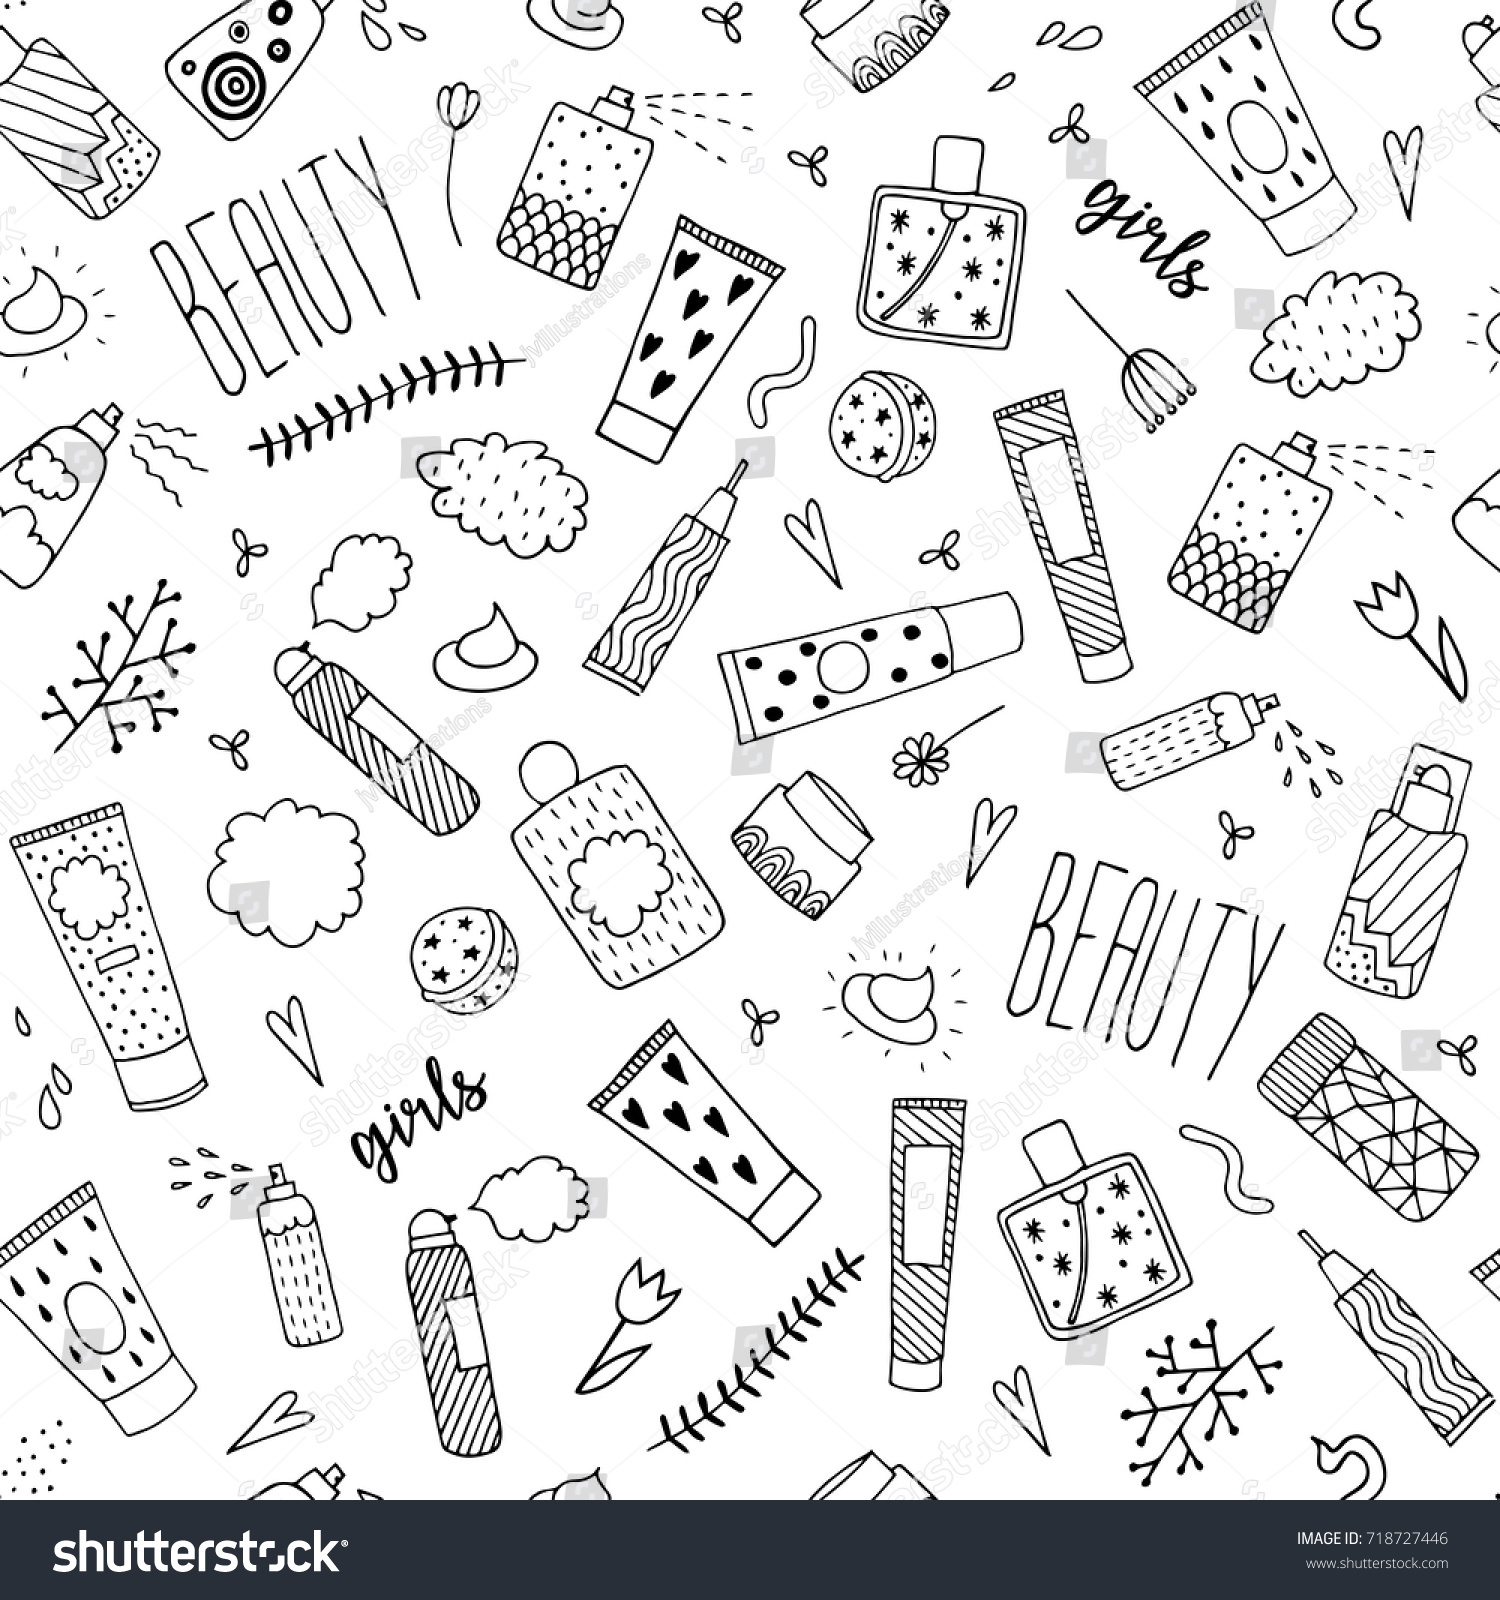 Top Cartoon Makeup Wallpaper - stock-vector-beauty-items-for-girls-seamless-pattern-cosmetic-for-makeup-tubes-and-bottles-hand-drawn-vector-718727446  Best Photo Reference_172553.jpg